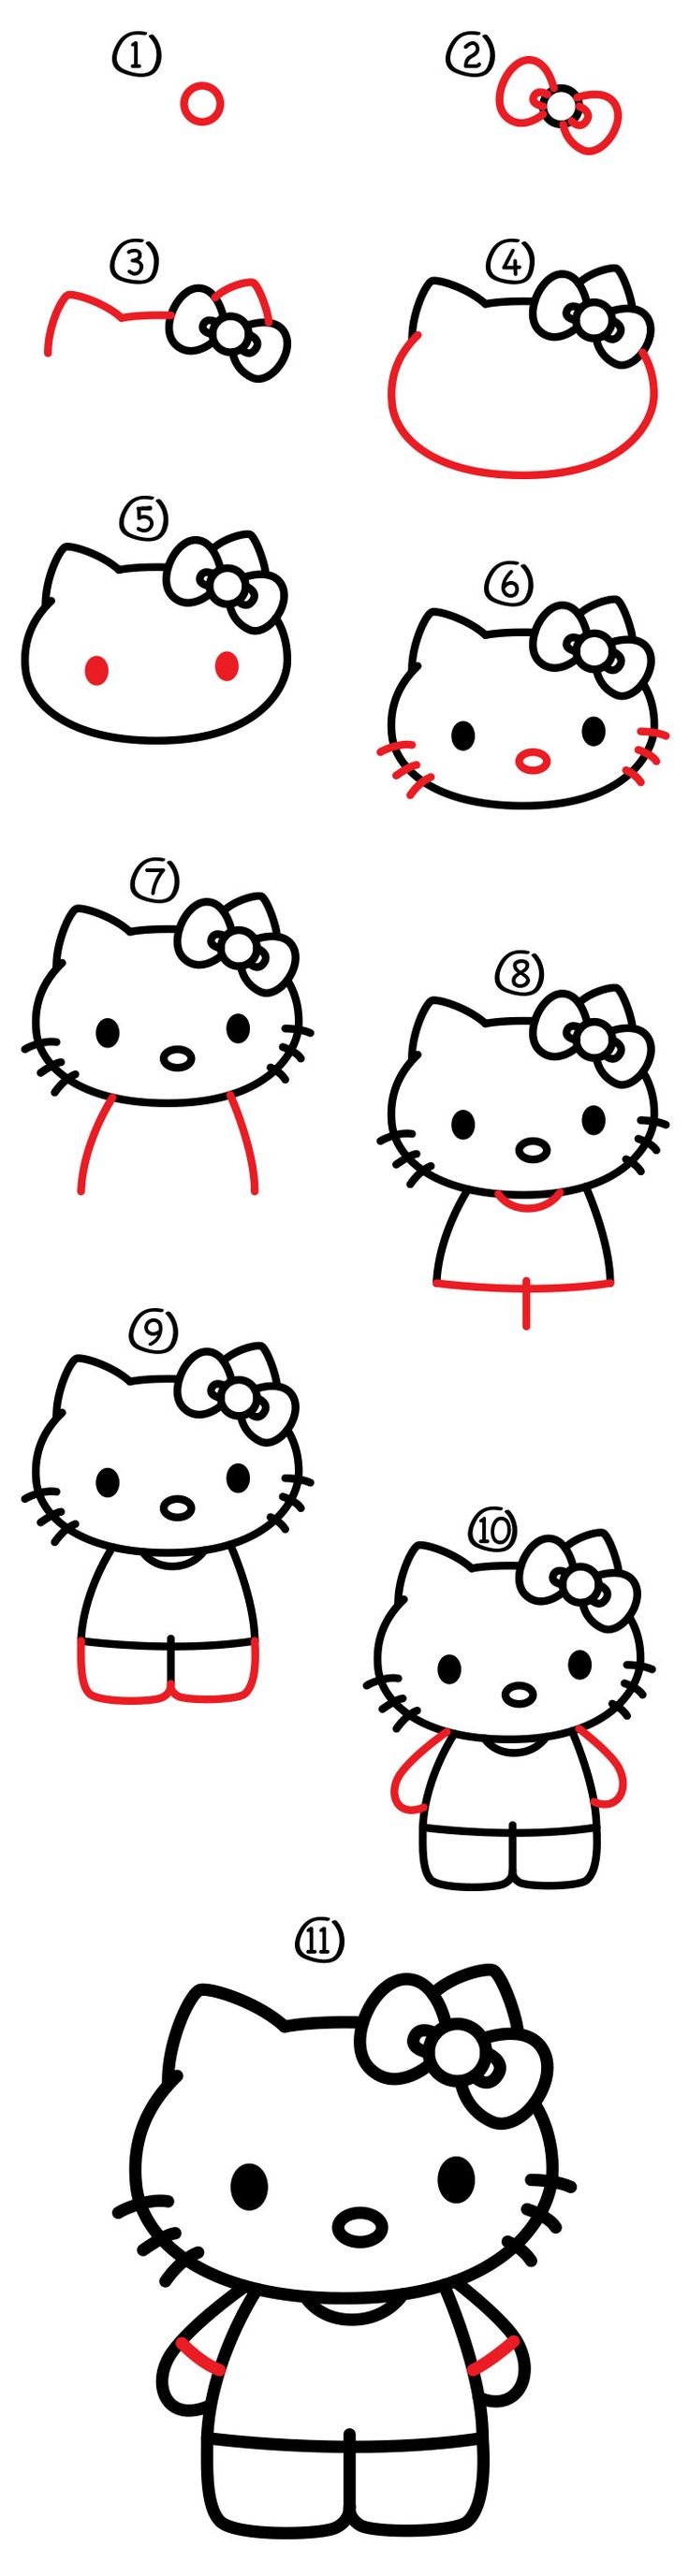 Follow along with us and learn how to draw Hello Kitty. Also be sure to visit the official Hello Kitty website and draw the other characters!